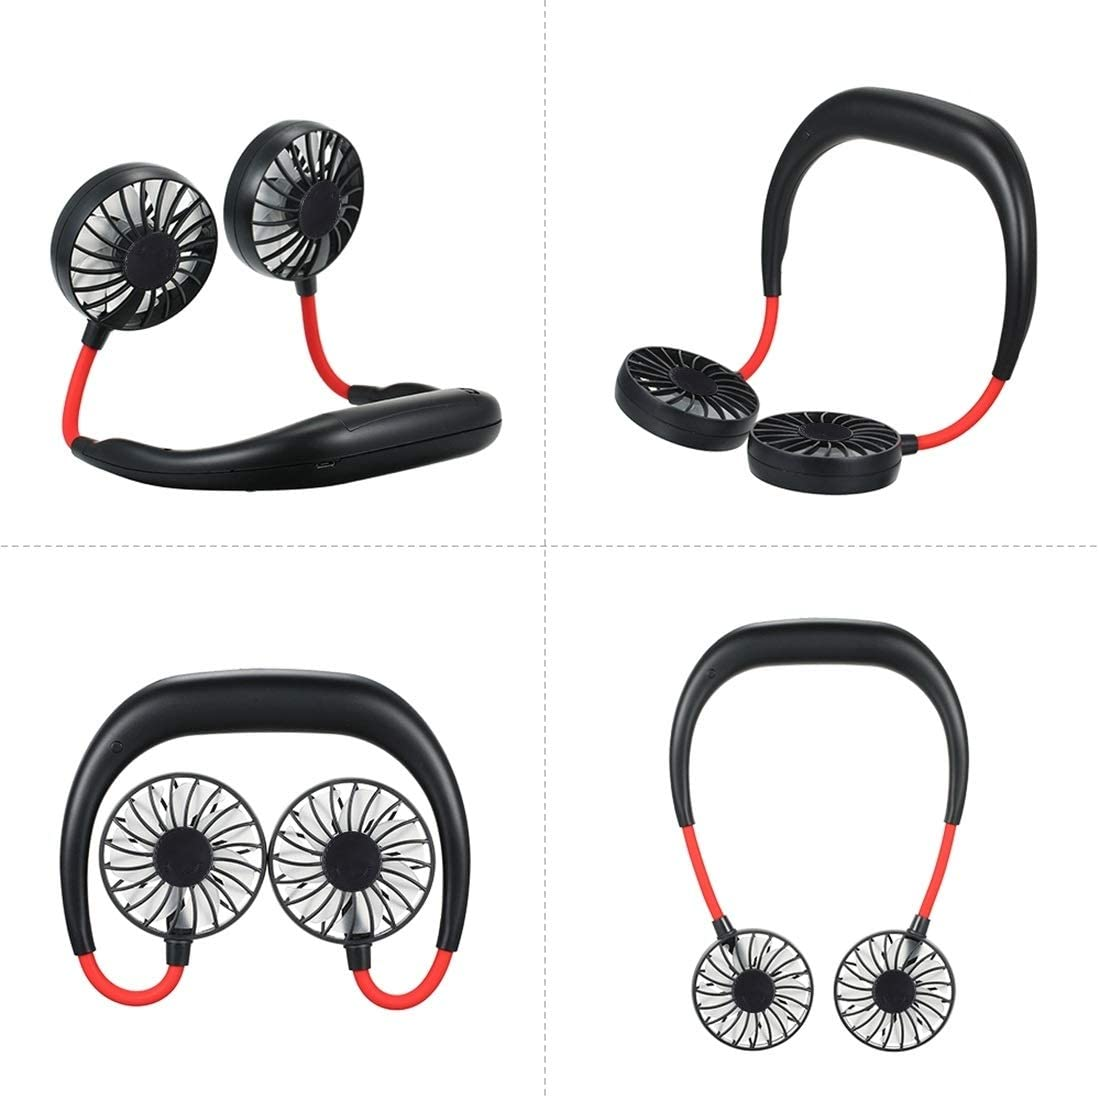 Color : Coral Red Cooling Fan Sprayeross YHM 0.3W-1.2W Portable Adjustable Micro USB Charging Hanging Neck Type Aromatherapy Electric Sport Fan Black